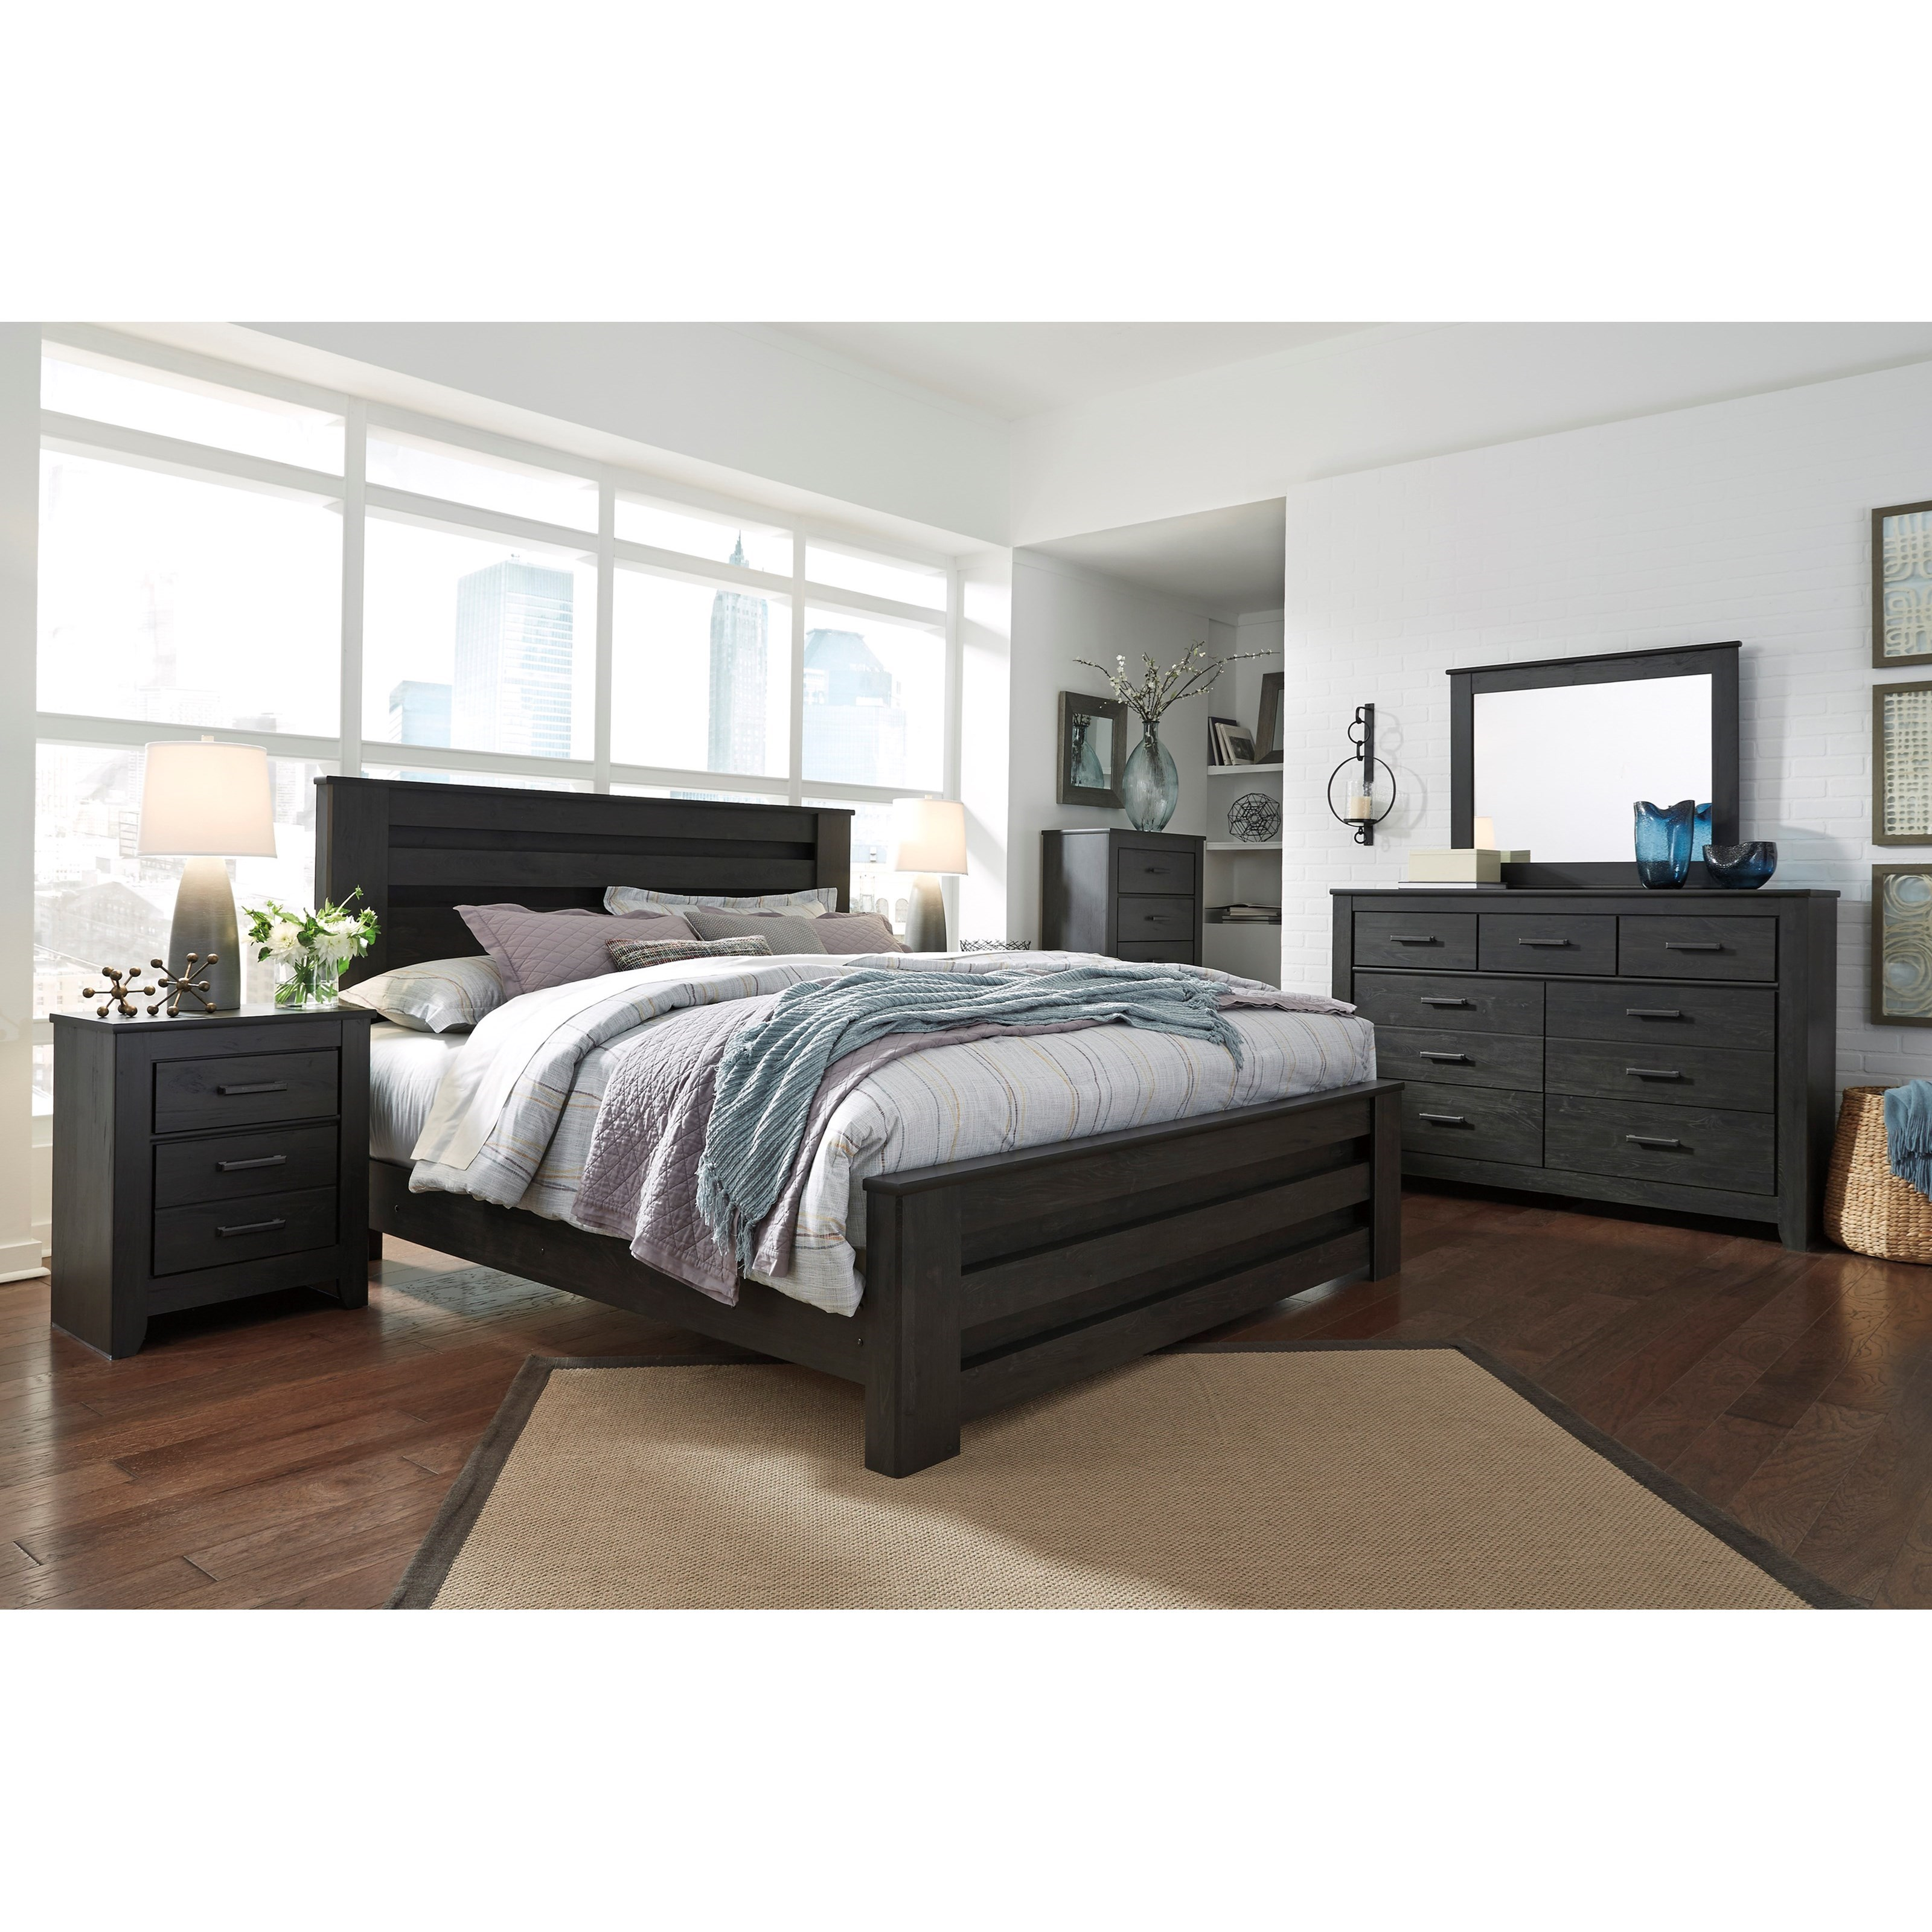 Signature Design by Ashley Brinxton King Bedroom Group